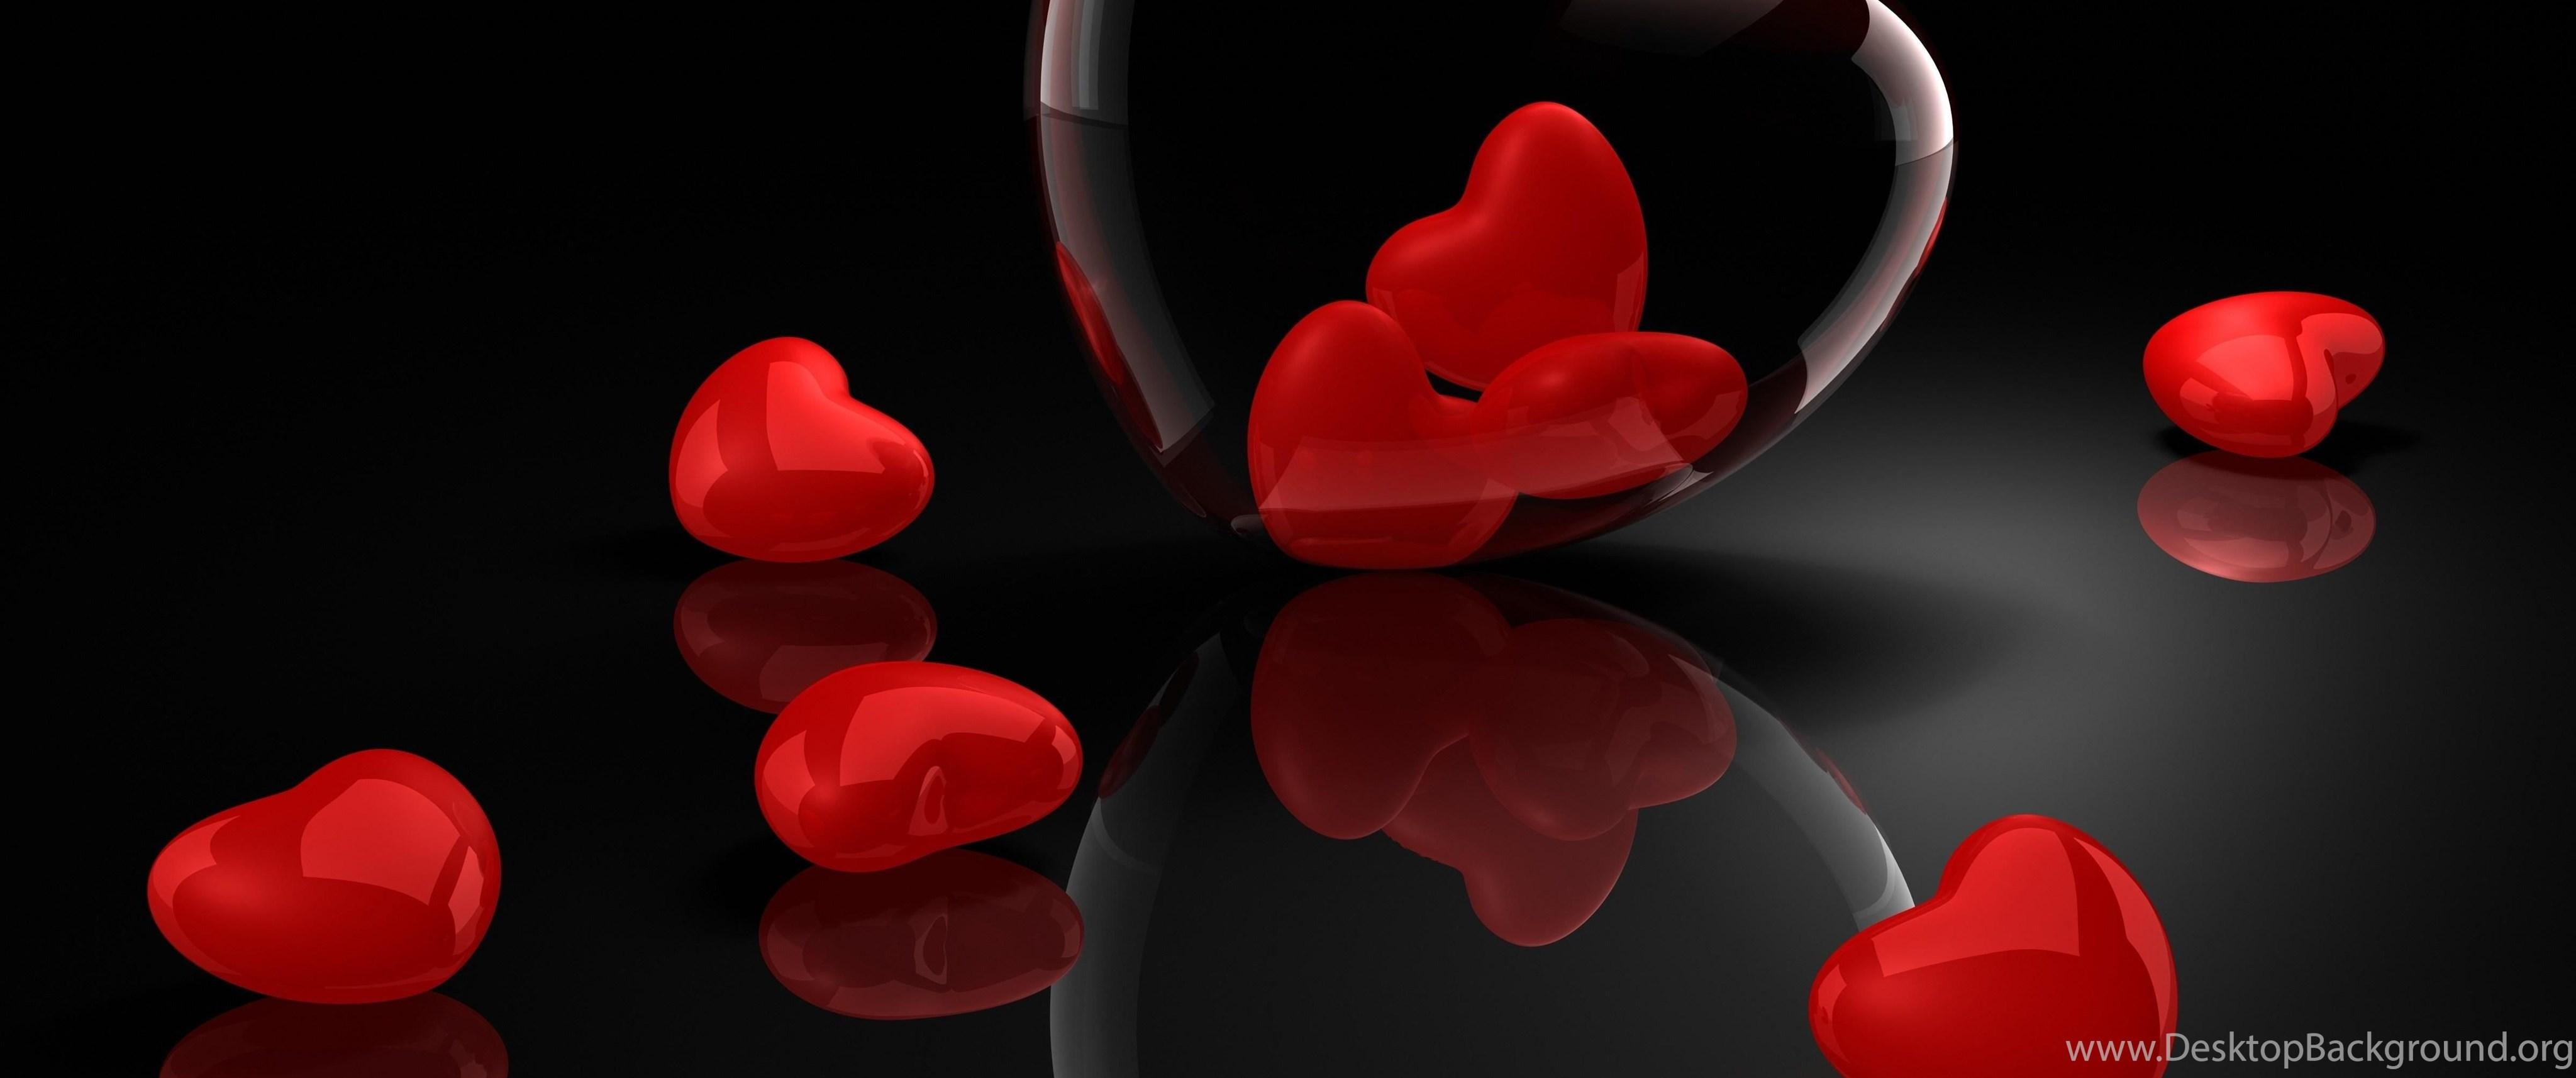 Heart, Glass, 3d, Reflection >> HD Wallpaper, Get It Now! Desktop